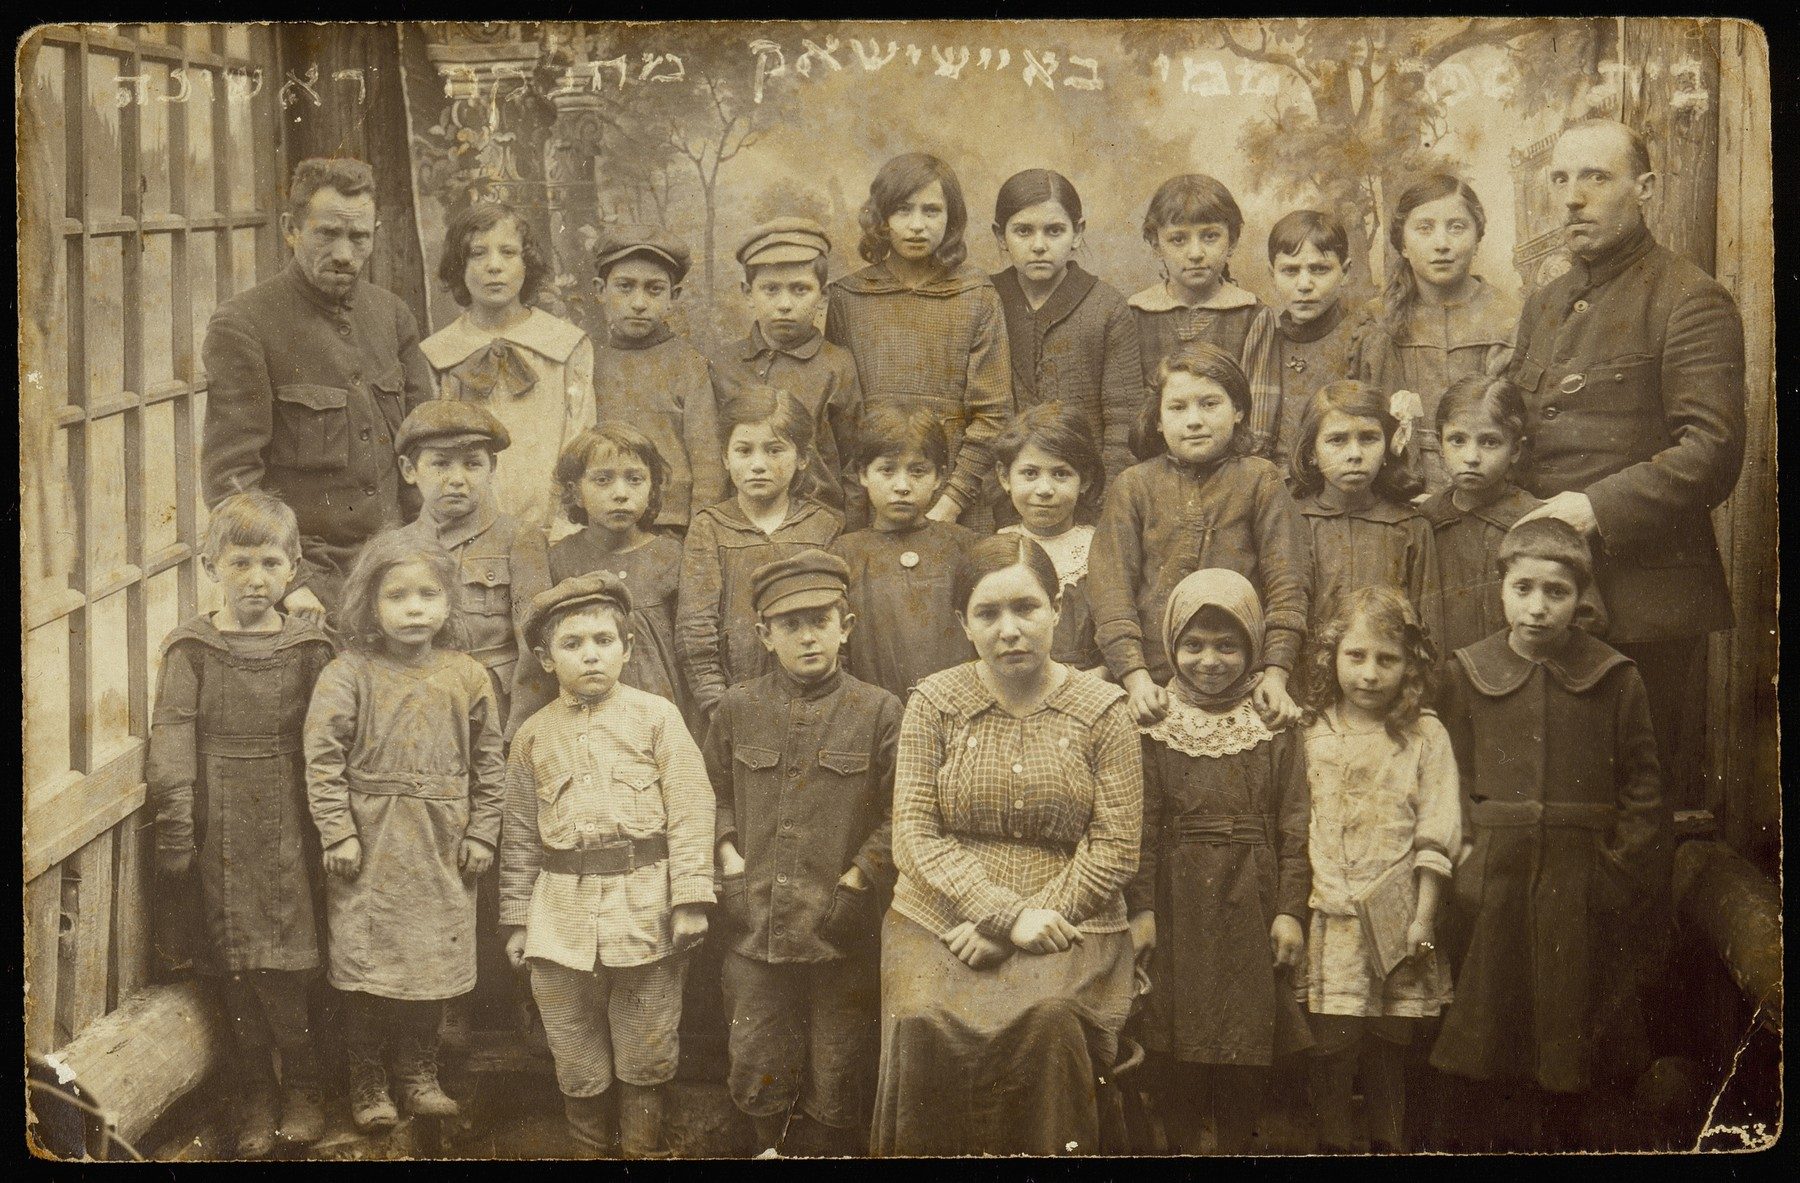 The first grade class photo of  the first coeductional Hebrew day school in Eisiskes.    The three Hebrew teachers are Moshe Yaakov Botwinik (right), Yaakov Schneider (left) and Rivka Rubinstein (sitting in the first row). The students: (first row, right to left) (first name unknown) Rosenblum, name unknown, Luba Ginunski, Shaike Segal, Shaul Schneider, (first name unknown) Slepak and Esther Katz ; (second row, right to left) Titinski, Paikowski, (first names unknown); fourth girl is a Ginunski; (third row, right to left) (first name unknown) Moszczenik, Taibke Kosowski, Lube Senitski, Dov Wilenski, and Miriam Lanski.